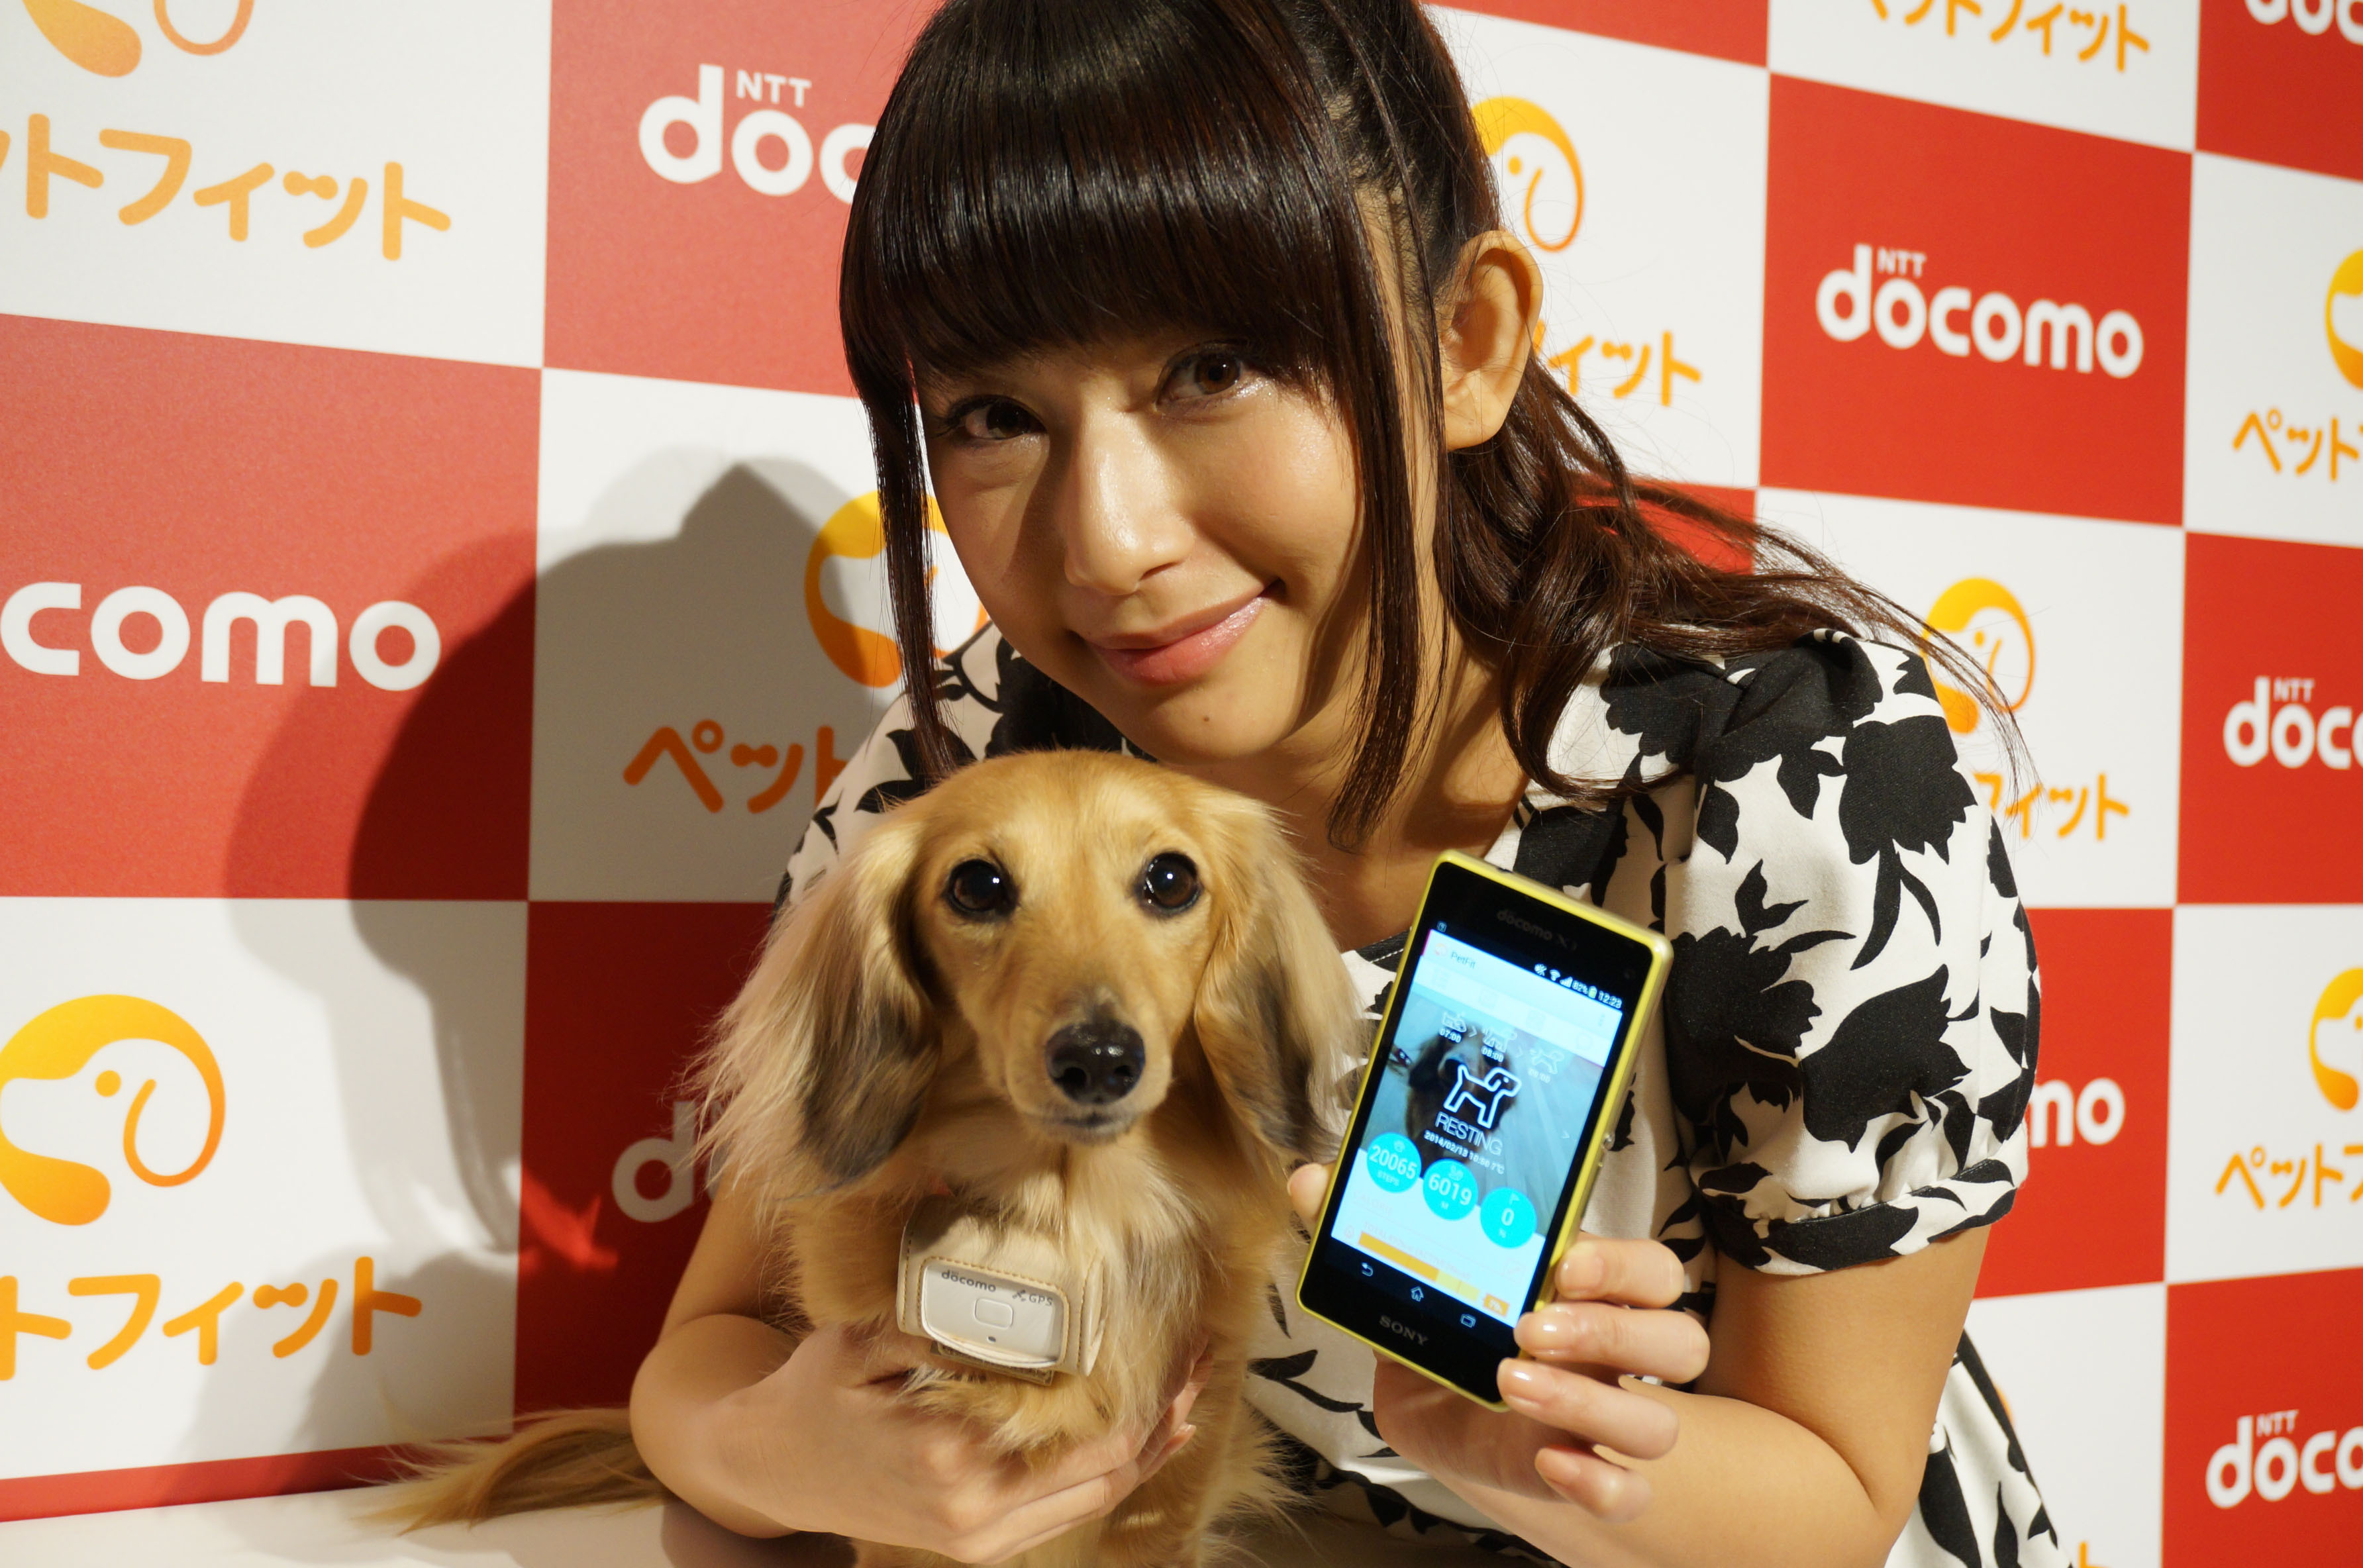 Dog tracker: NTT Docomo Inc. announces in Tokyo a new service for dog owners that the company says will let them monitor their pets' health and location by smartphone.   KAZUAKI NAGATA